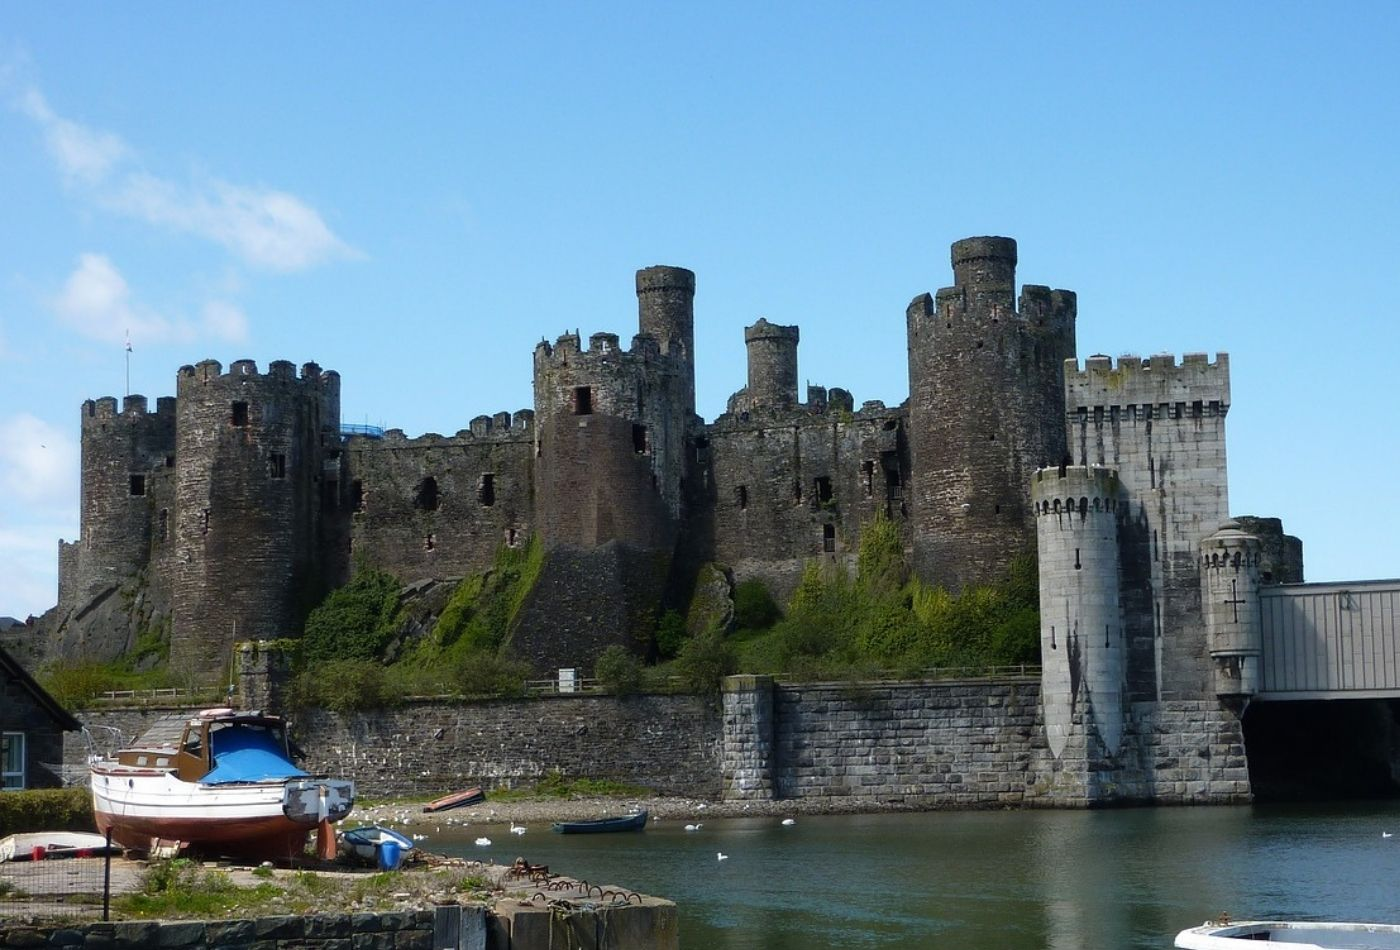 Views of Conwy Castle over the Harbour